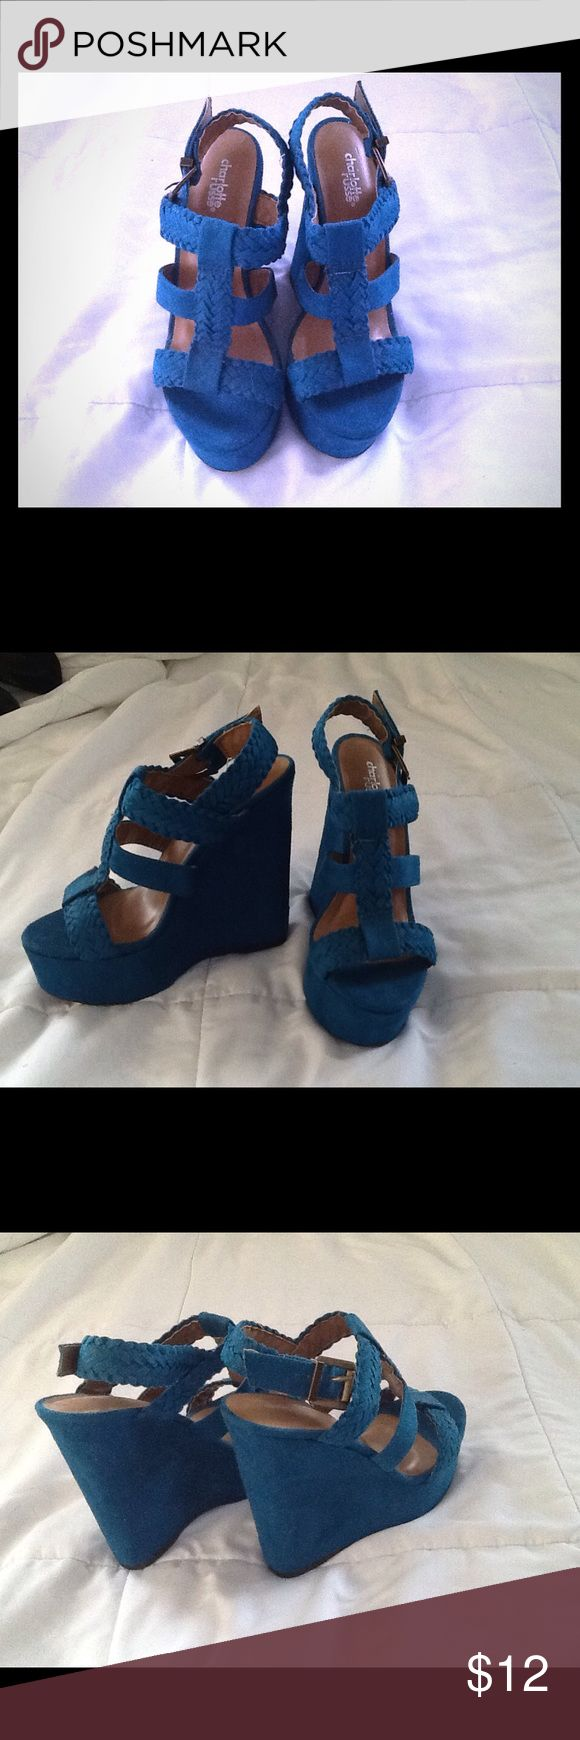 """Fun Turquoise Wedges Faux suede turquoise wedges. Buckle closure on the side. Braided accenting. Wedge is 5 1/2"""". In perfect condition. Only worn once!! Charlotte Russe Shoes Wedges"""